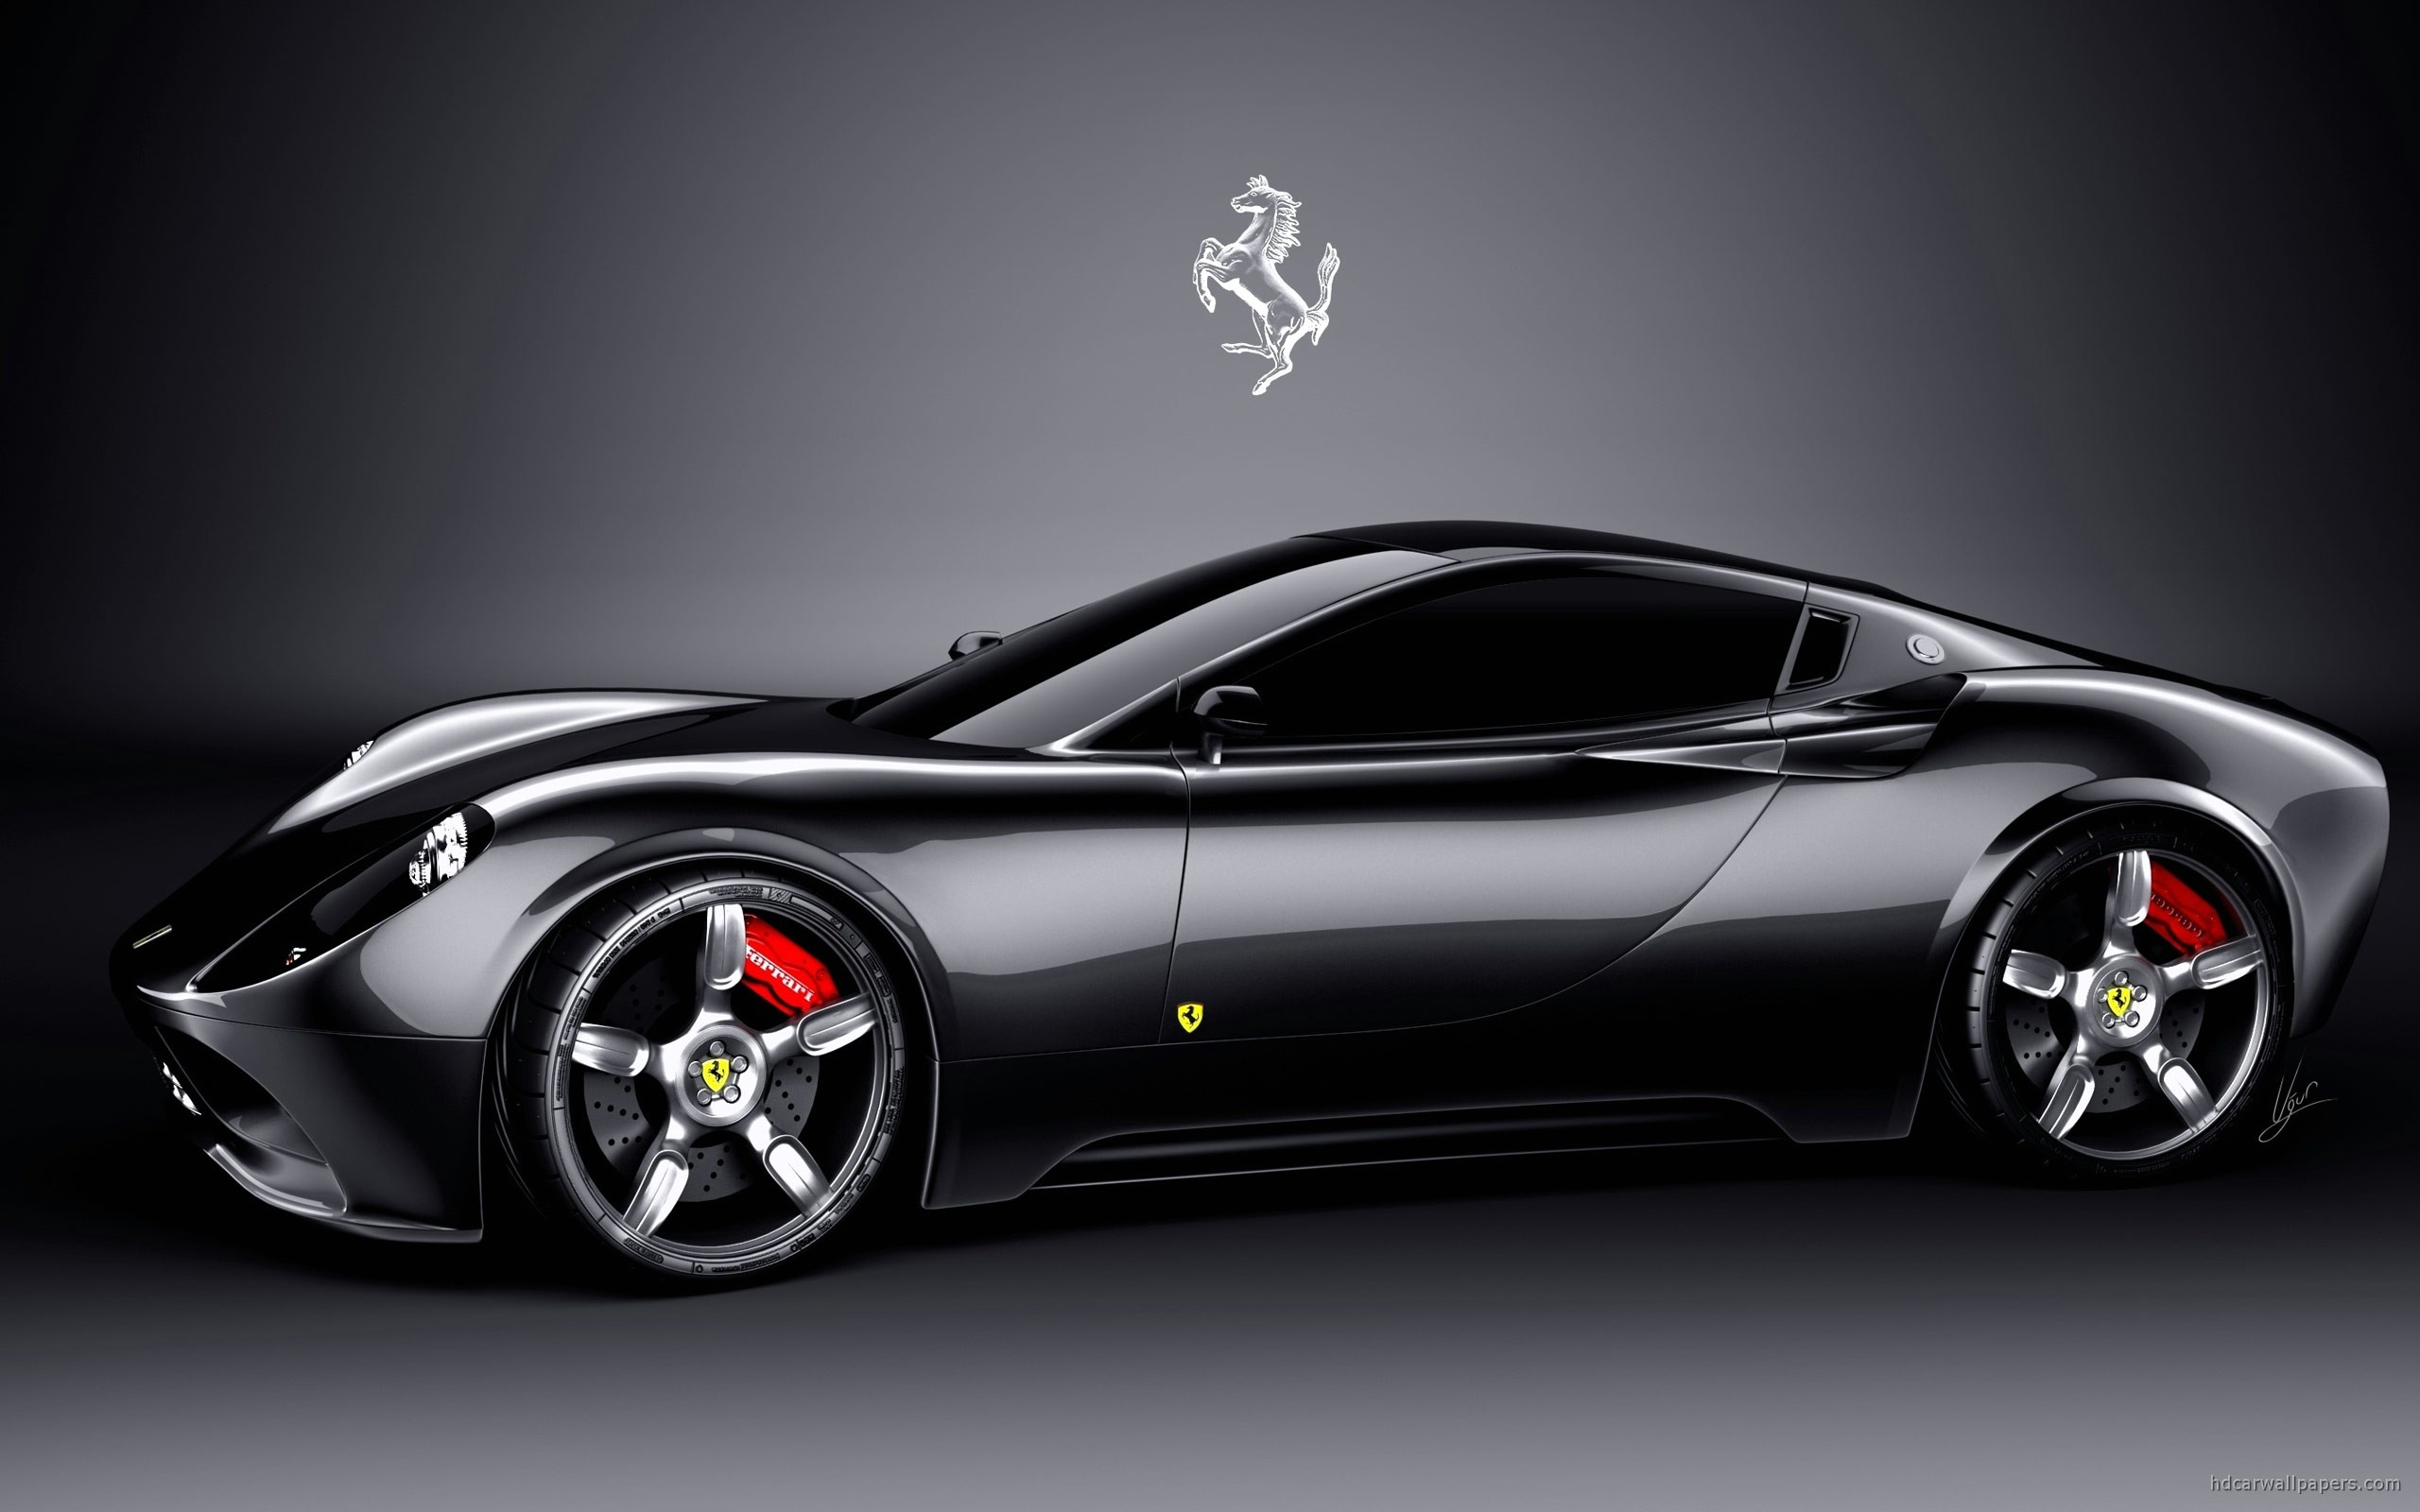 Ferrari hd widescreen